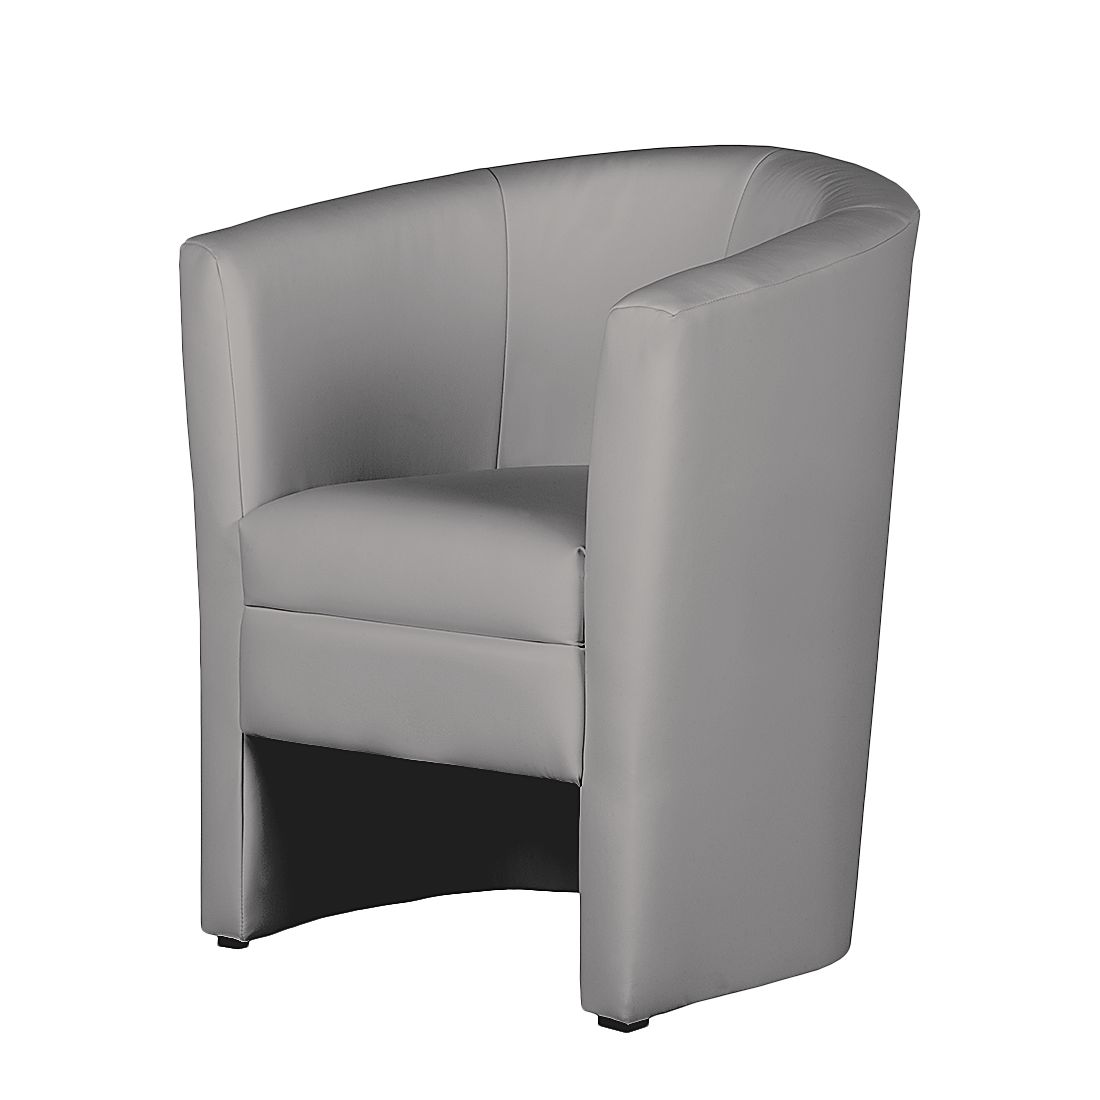 Fauteuil Sinclair IV - Cuir synthétique gris, mooved